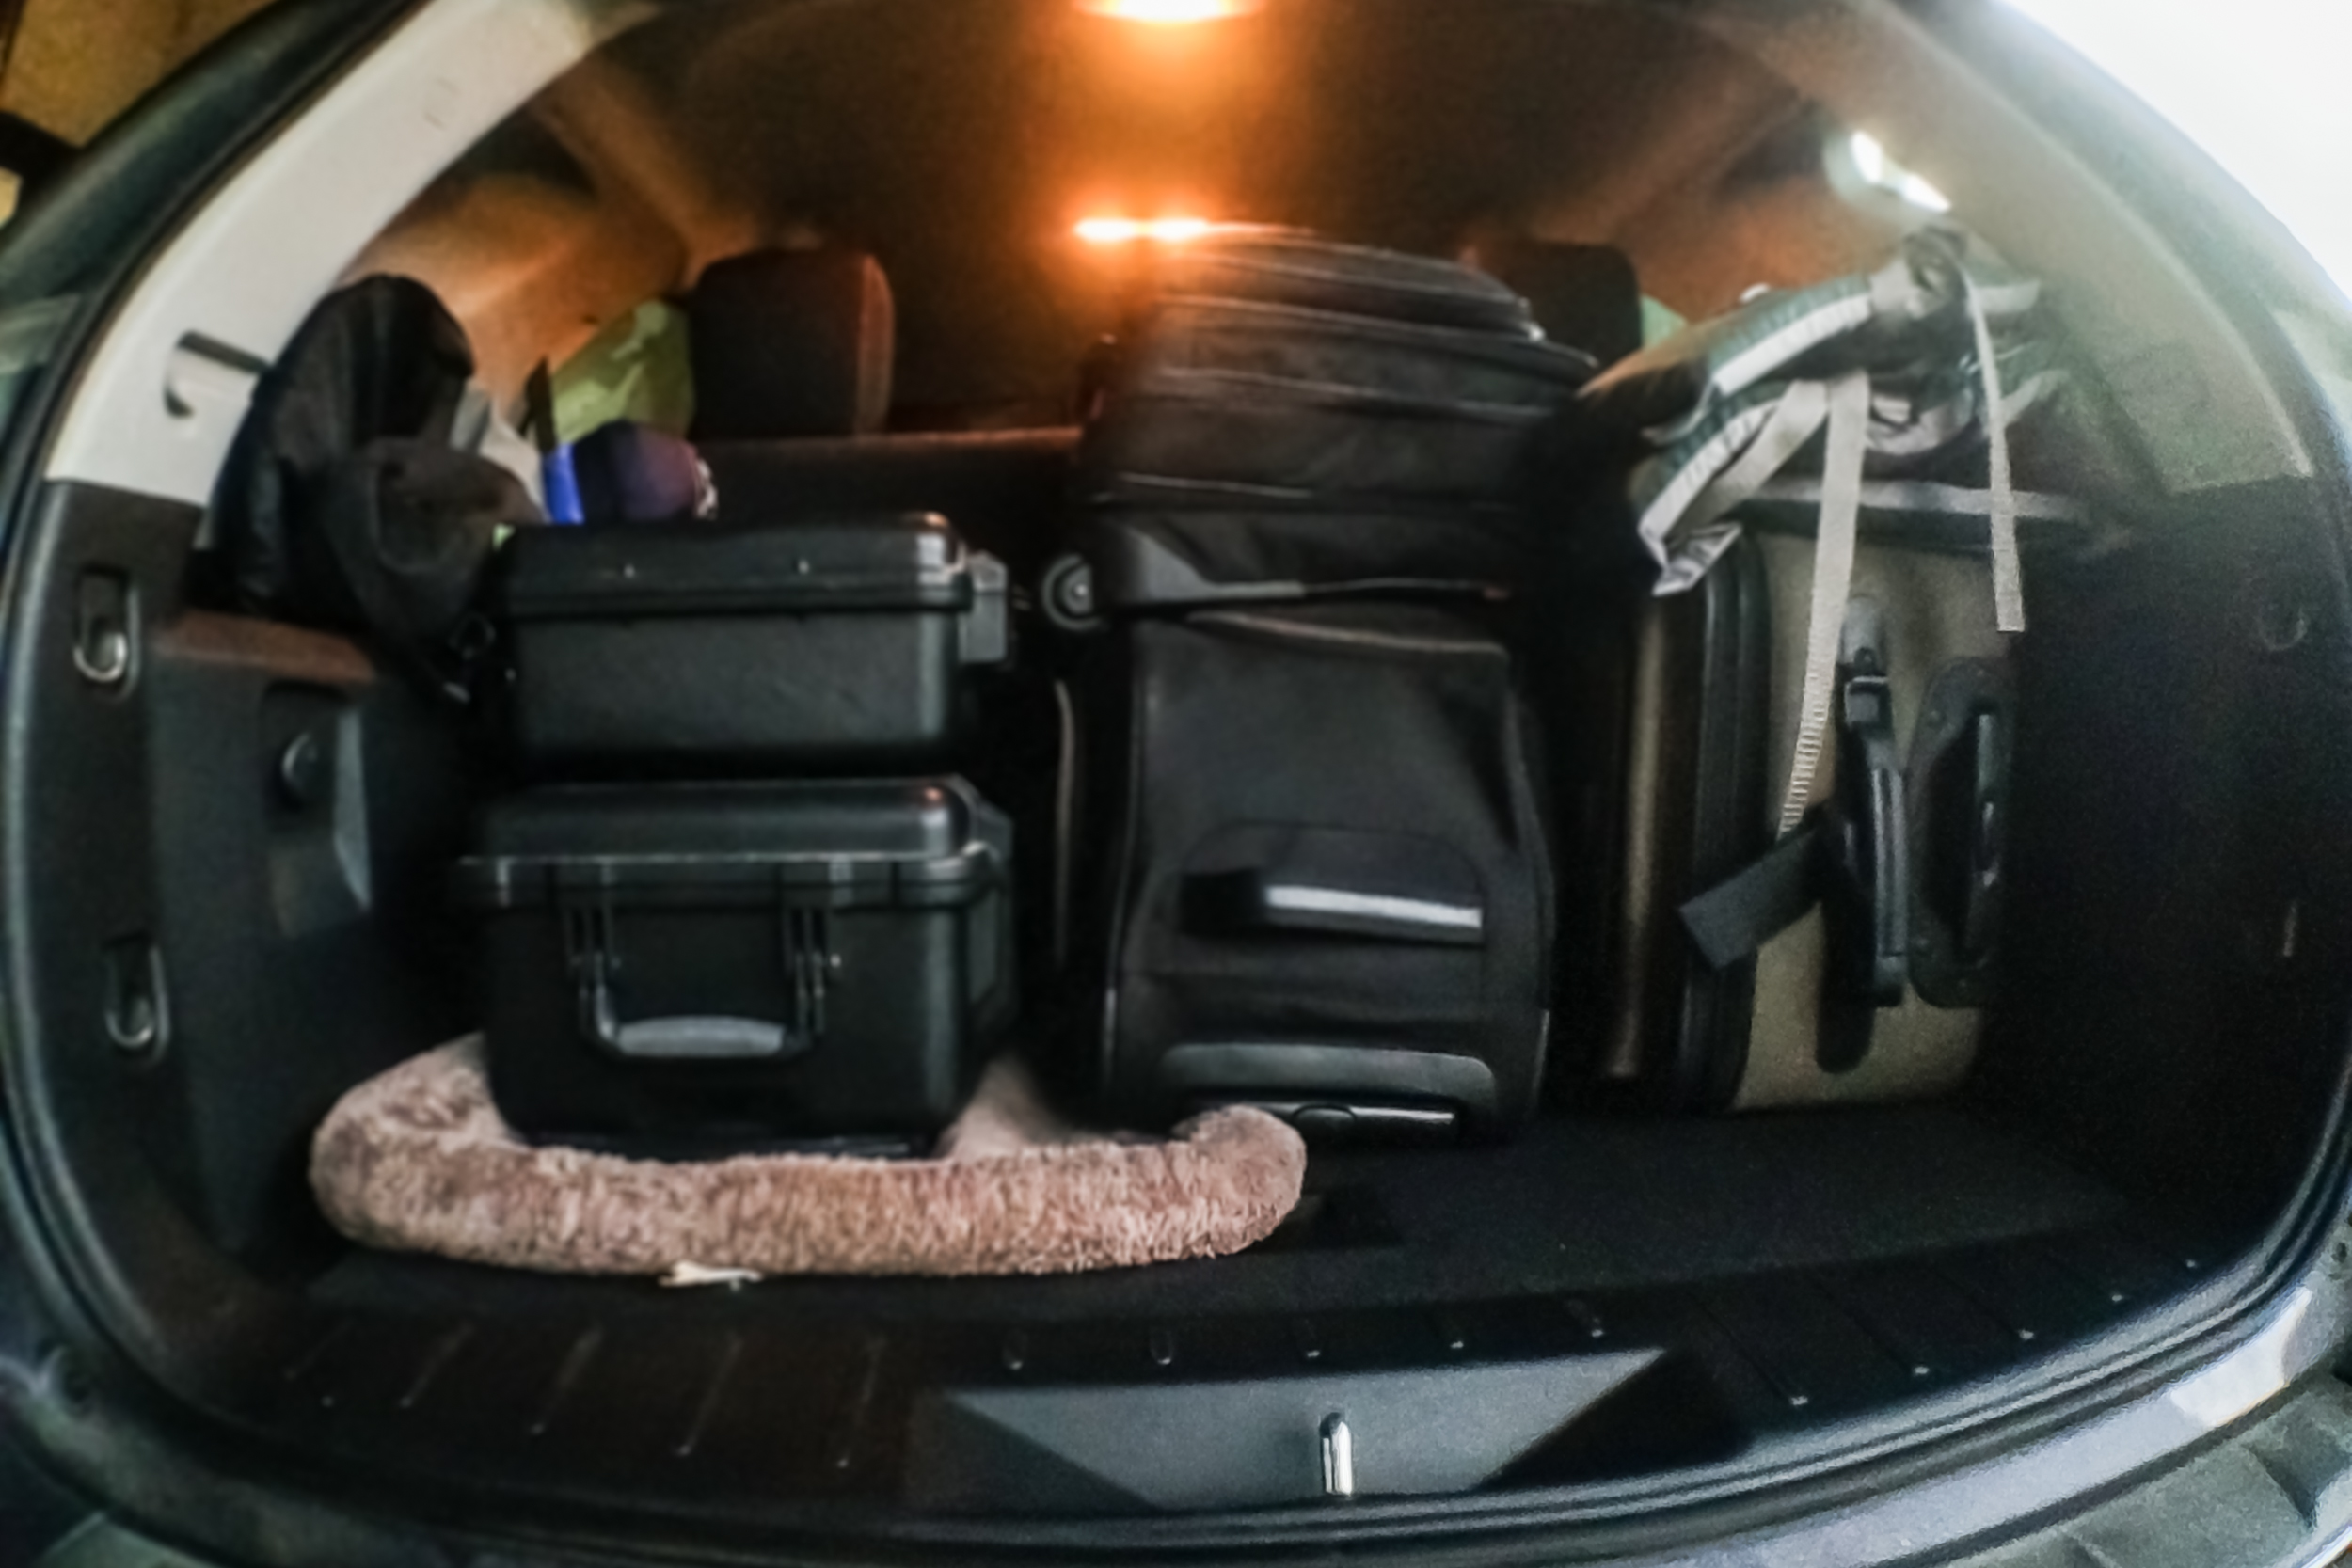 Notice how almost half the car is my photography equipment.